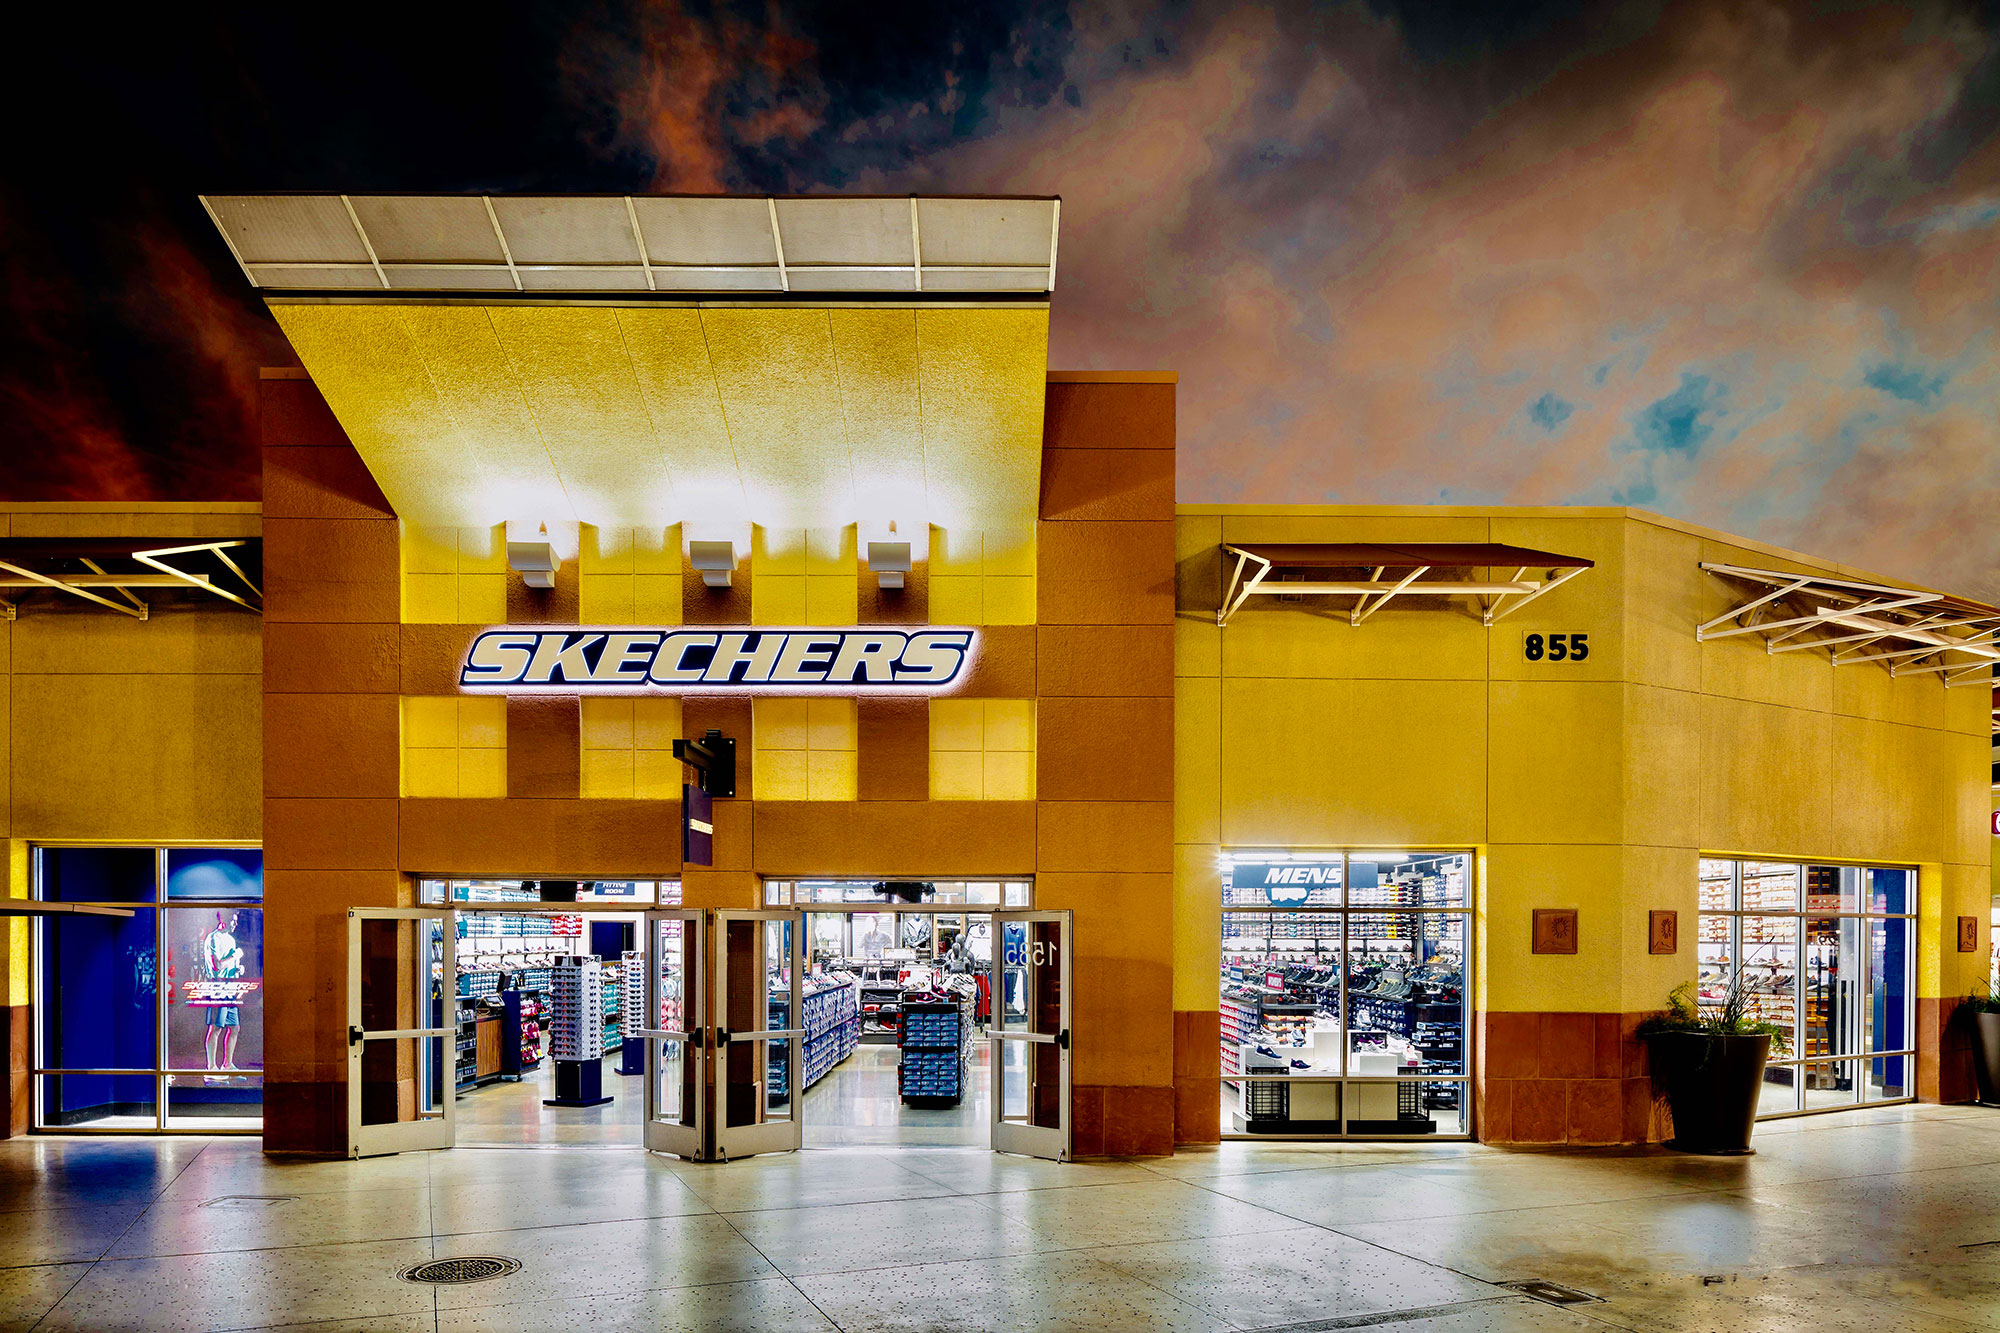 Skechers Shoe Outlet on Las Vegas Blvd